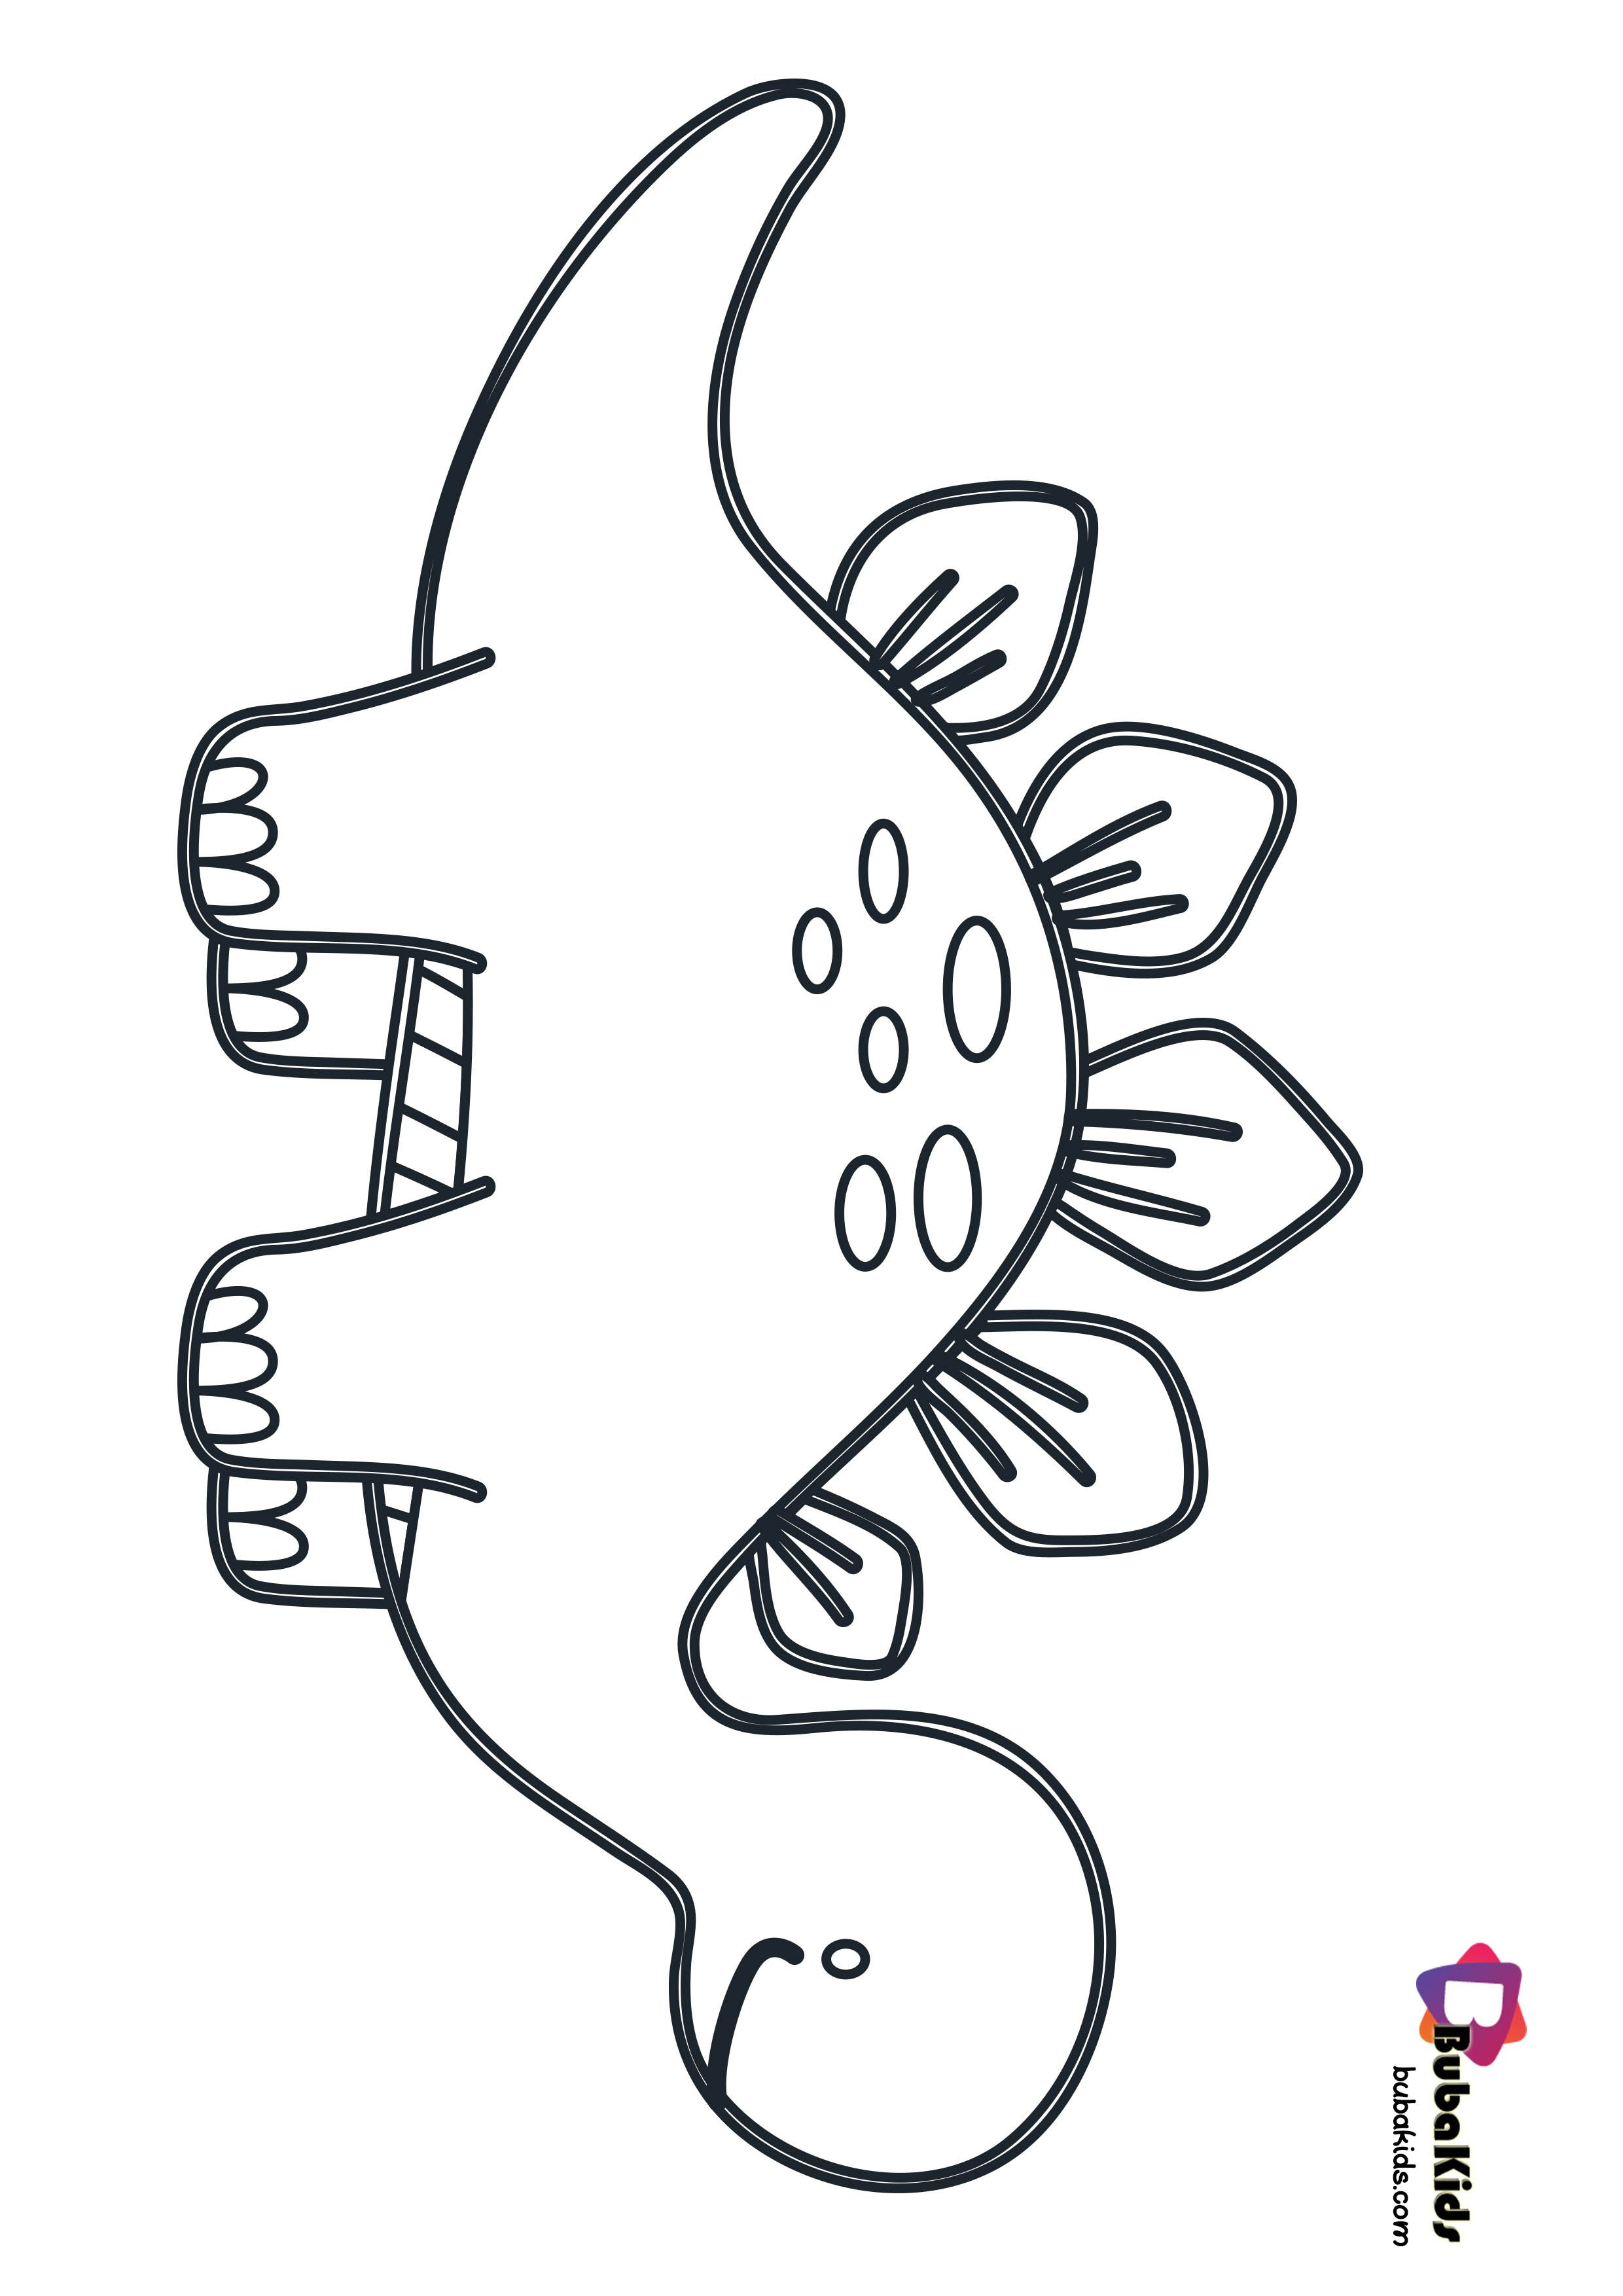 Cute Baby Dinosaurs Coloring Page For Kids